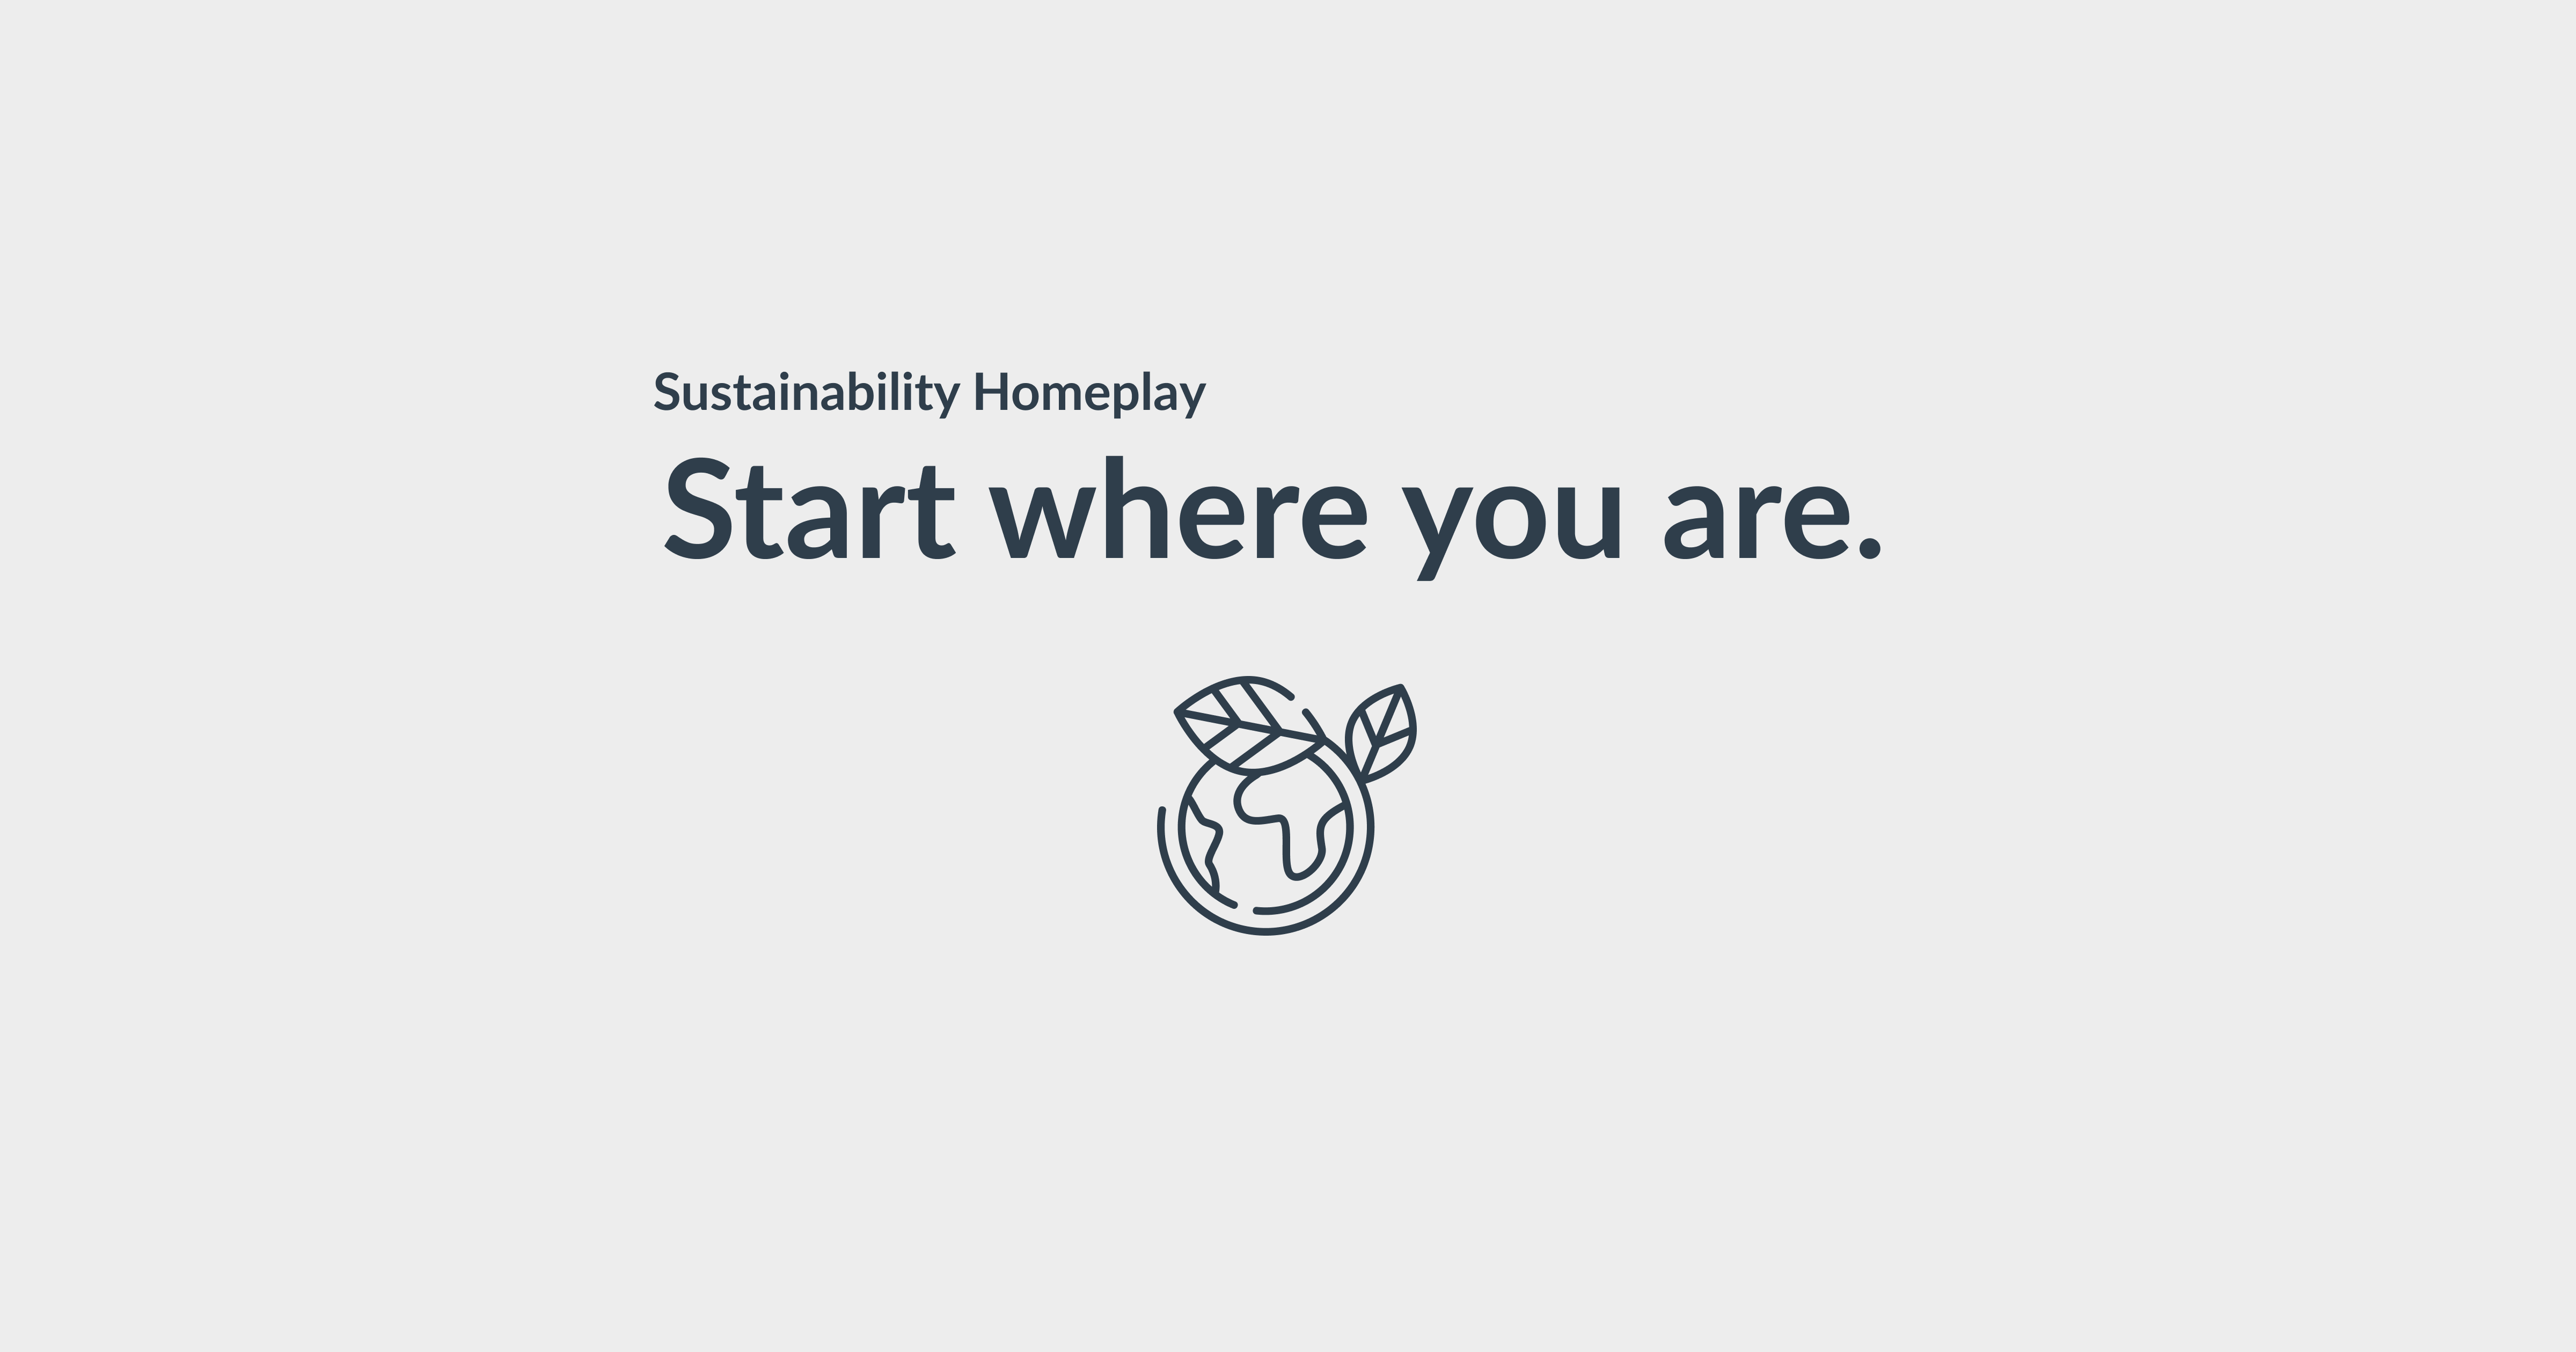 5 steps to start with sustainability in your professional life